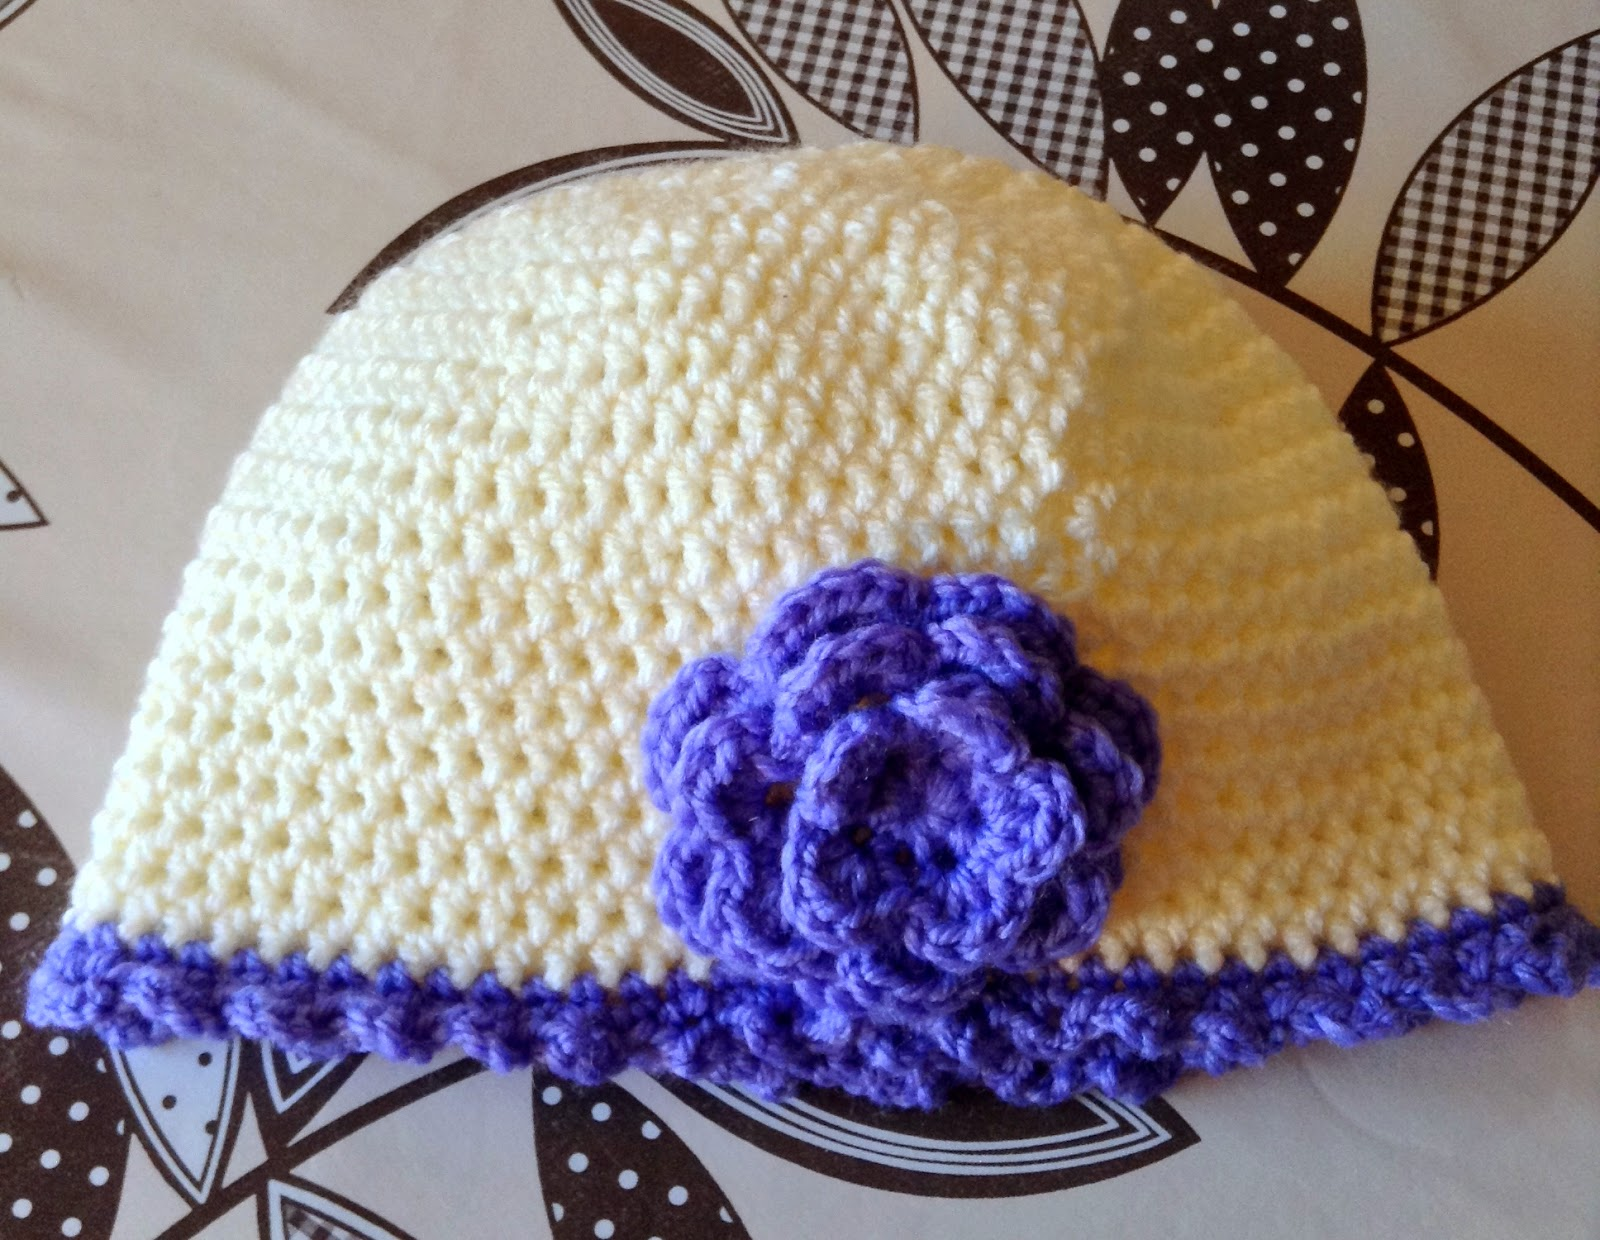 Sophies Knit Stuff: Crochet and Knit Hats For Heroes